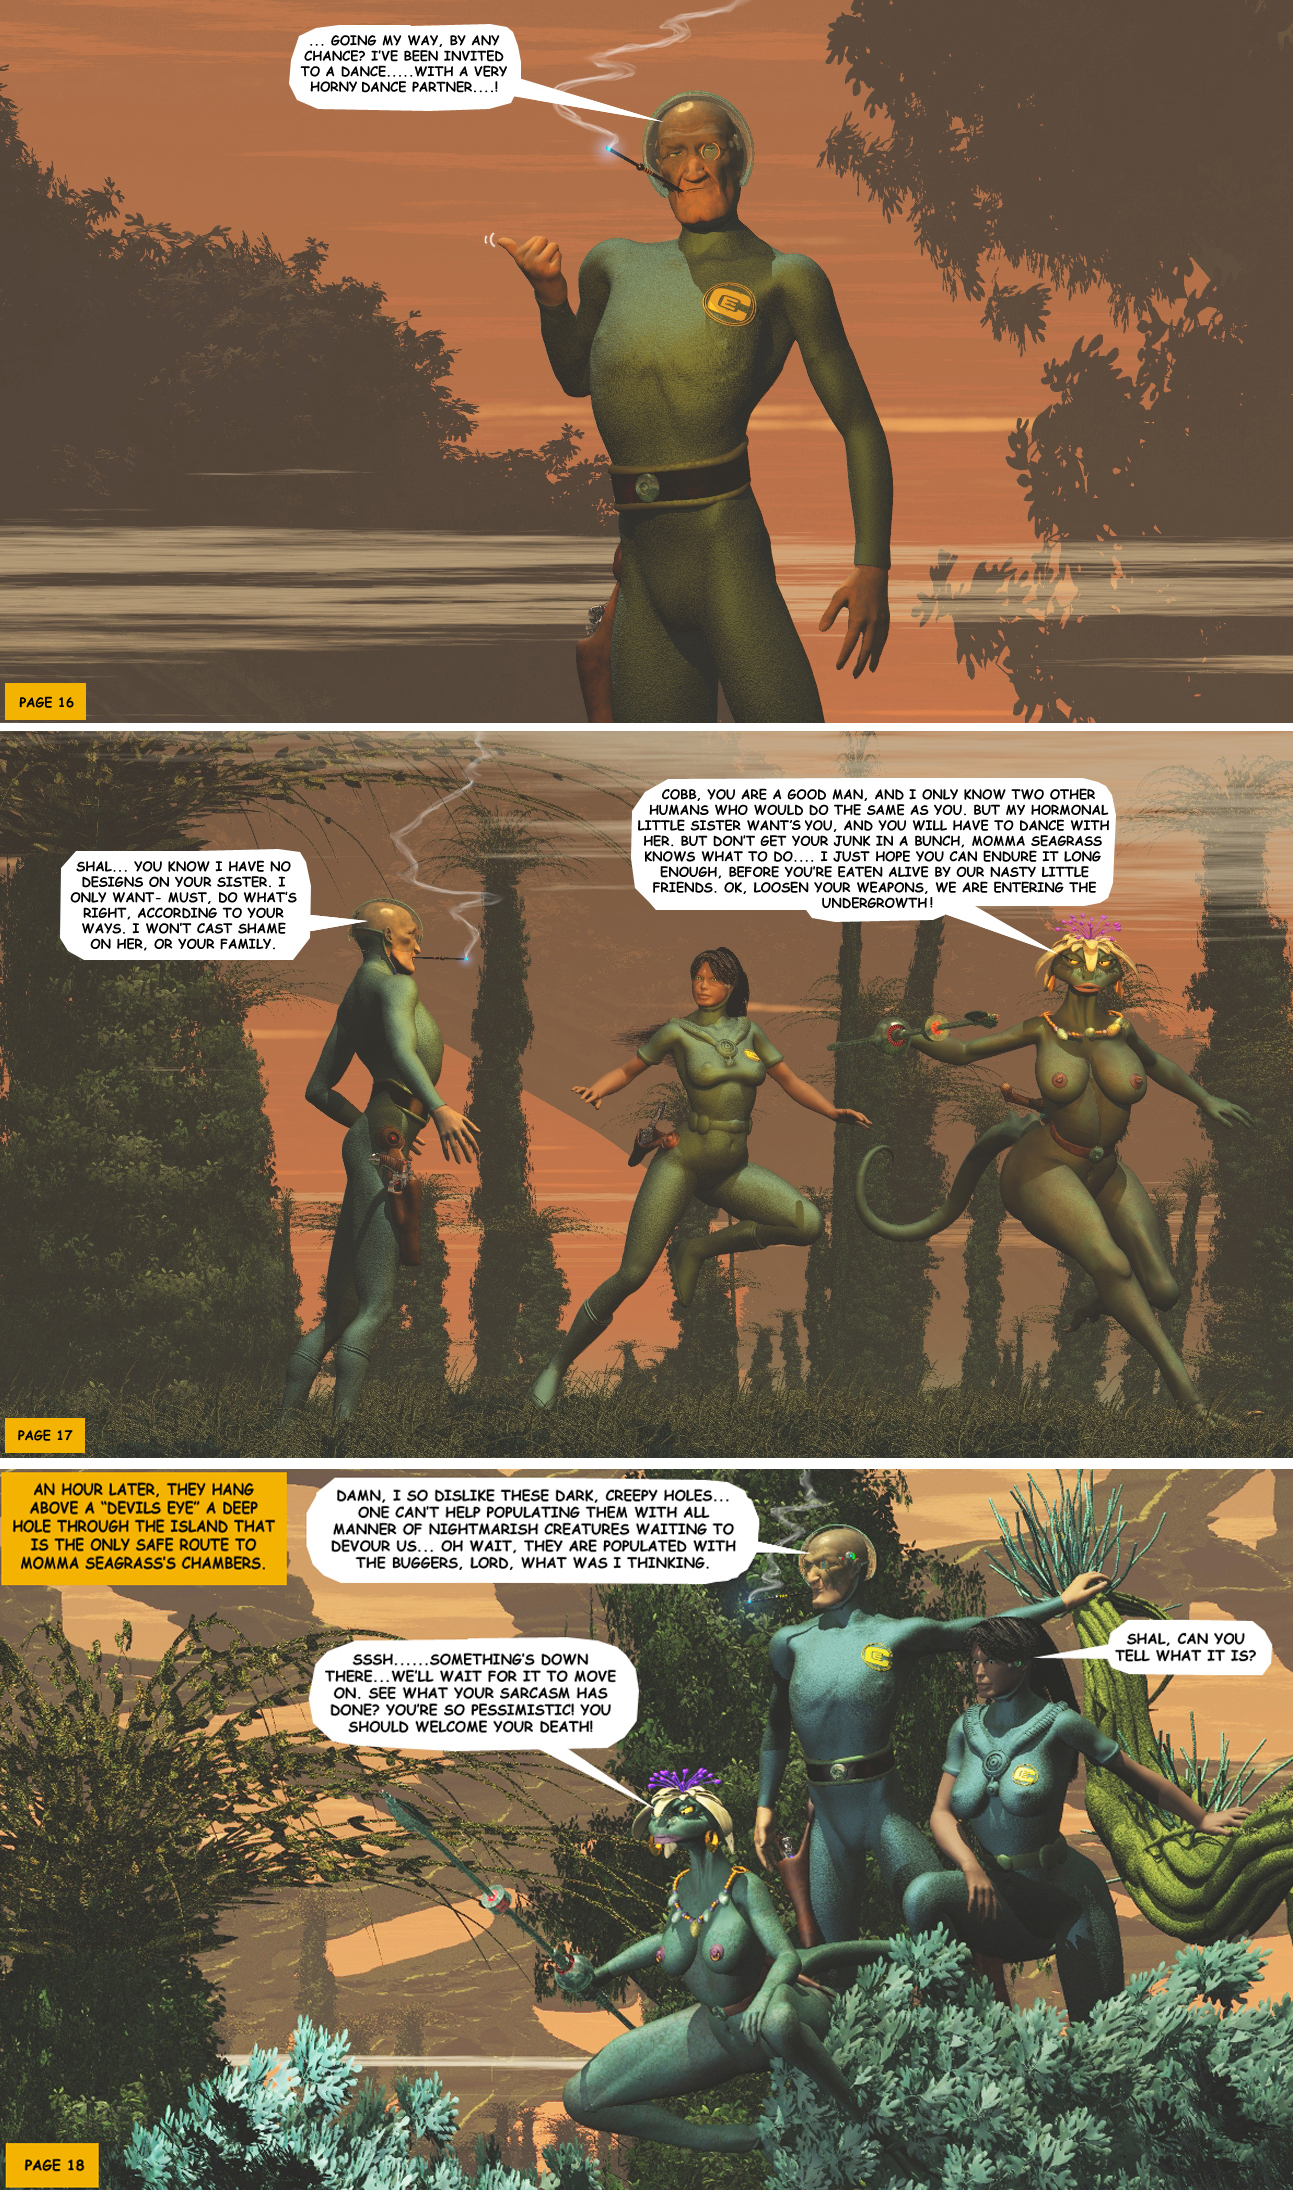 STORM OVER WHOOMERA: PAGE 20